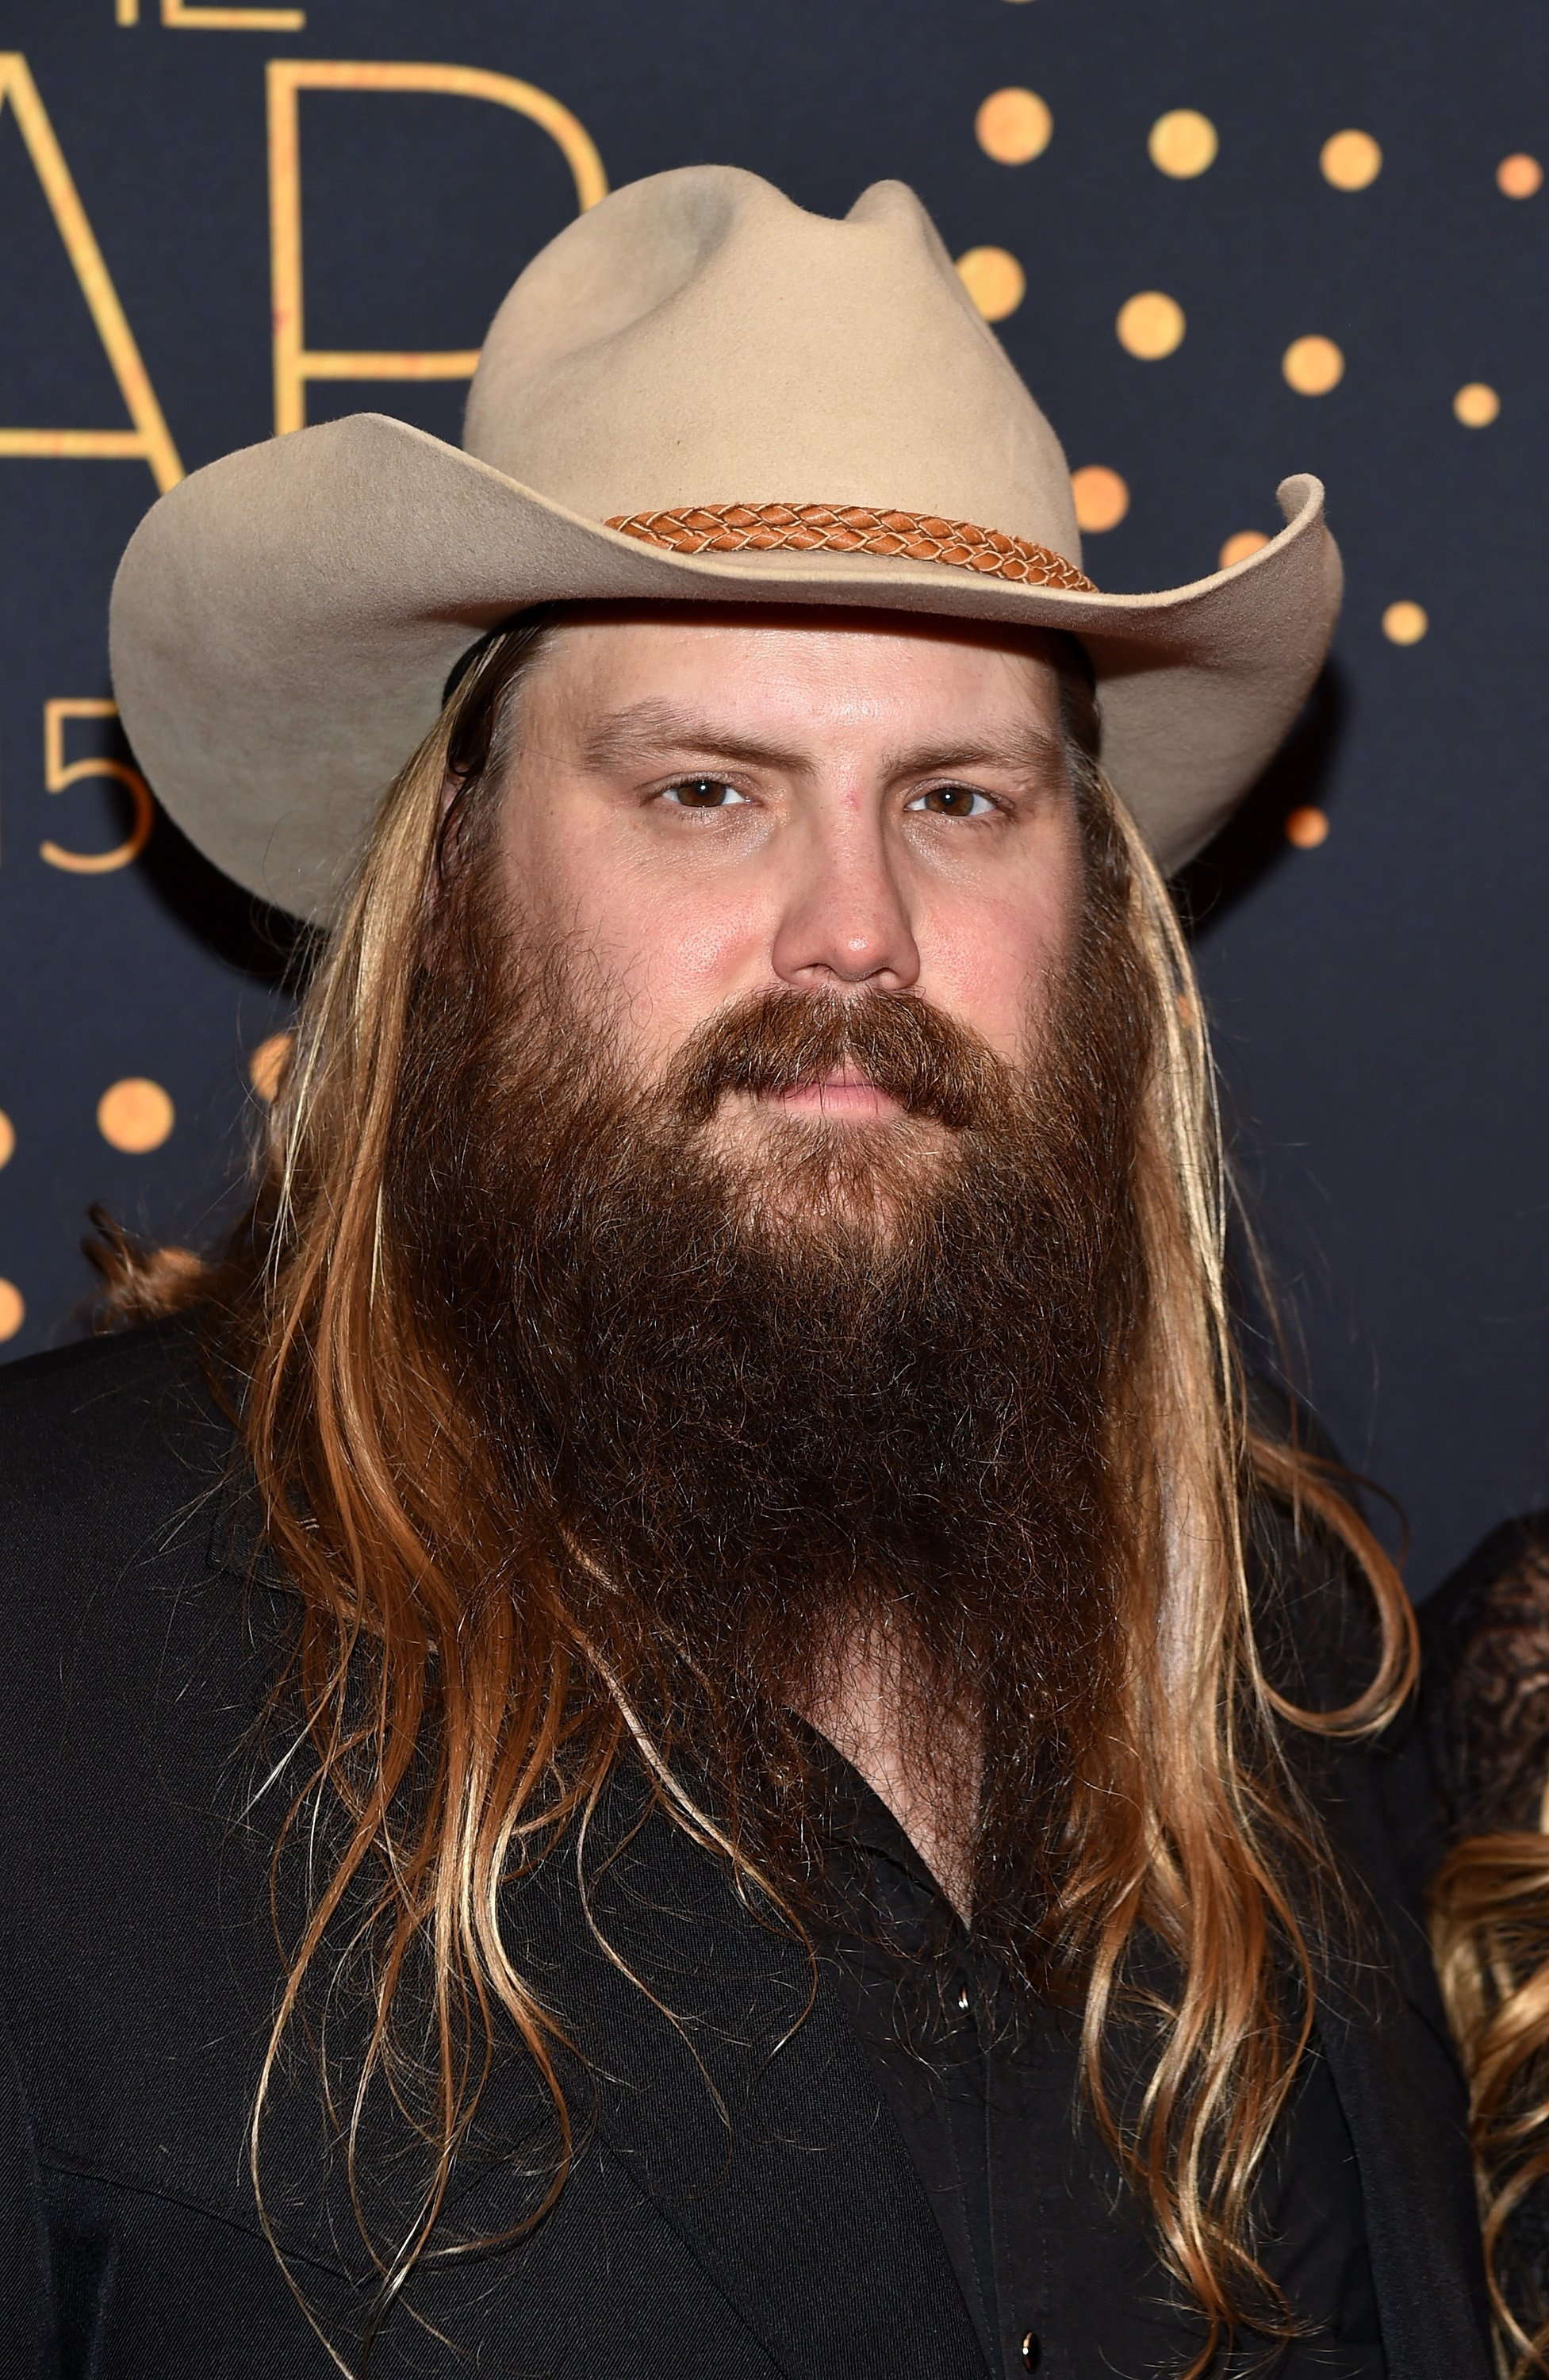 Chris Stapleton attends the 2015 CMT Artists of the Year in Nashville, Tennesee on December 2, 2015 | Photo: Getty Images